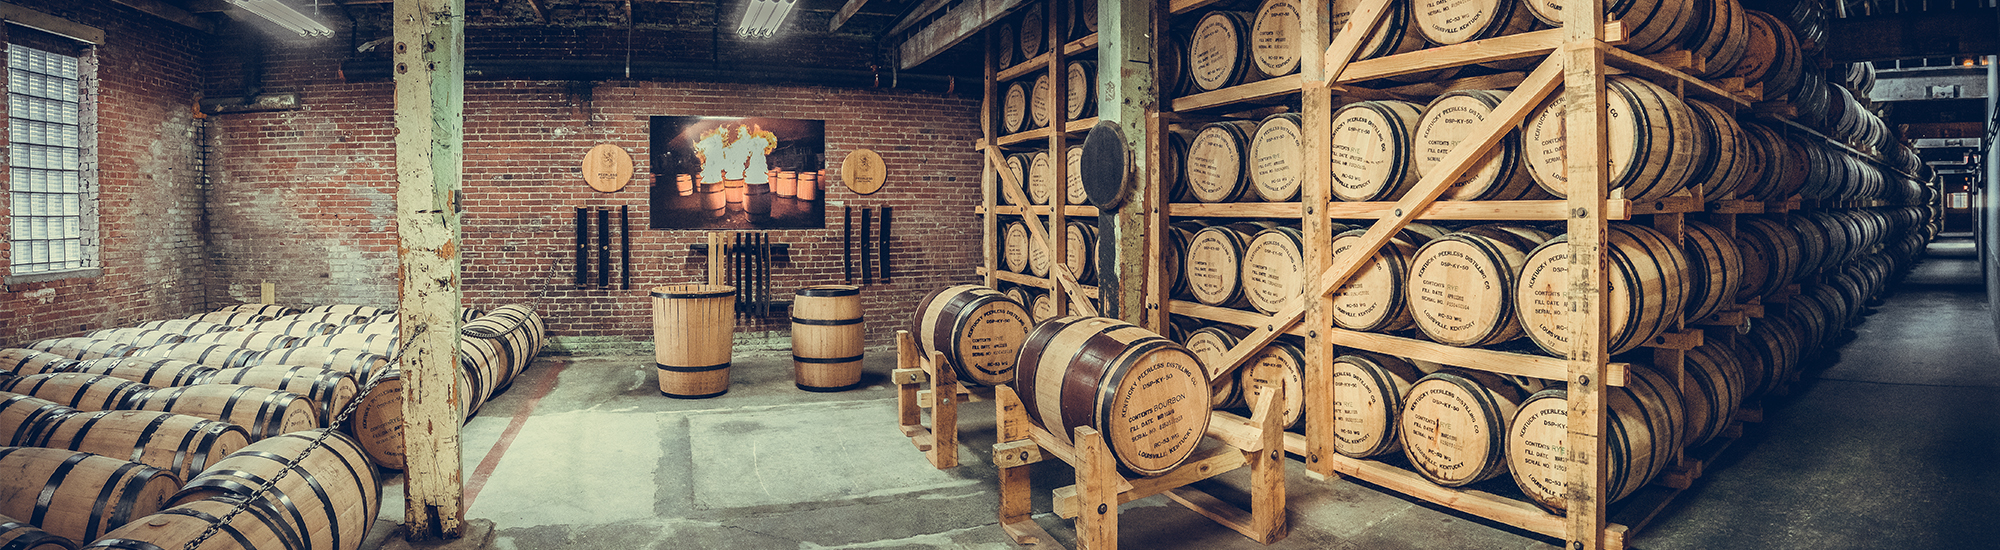 Visit best distillery in kentucky peerless